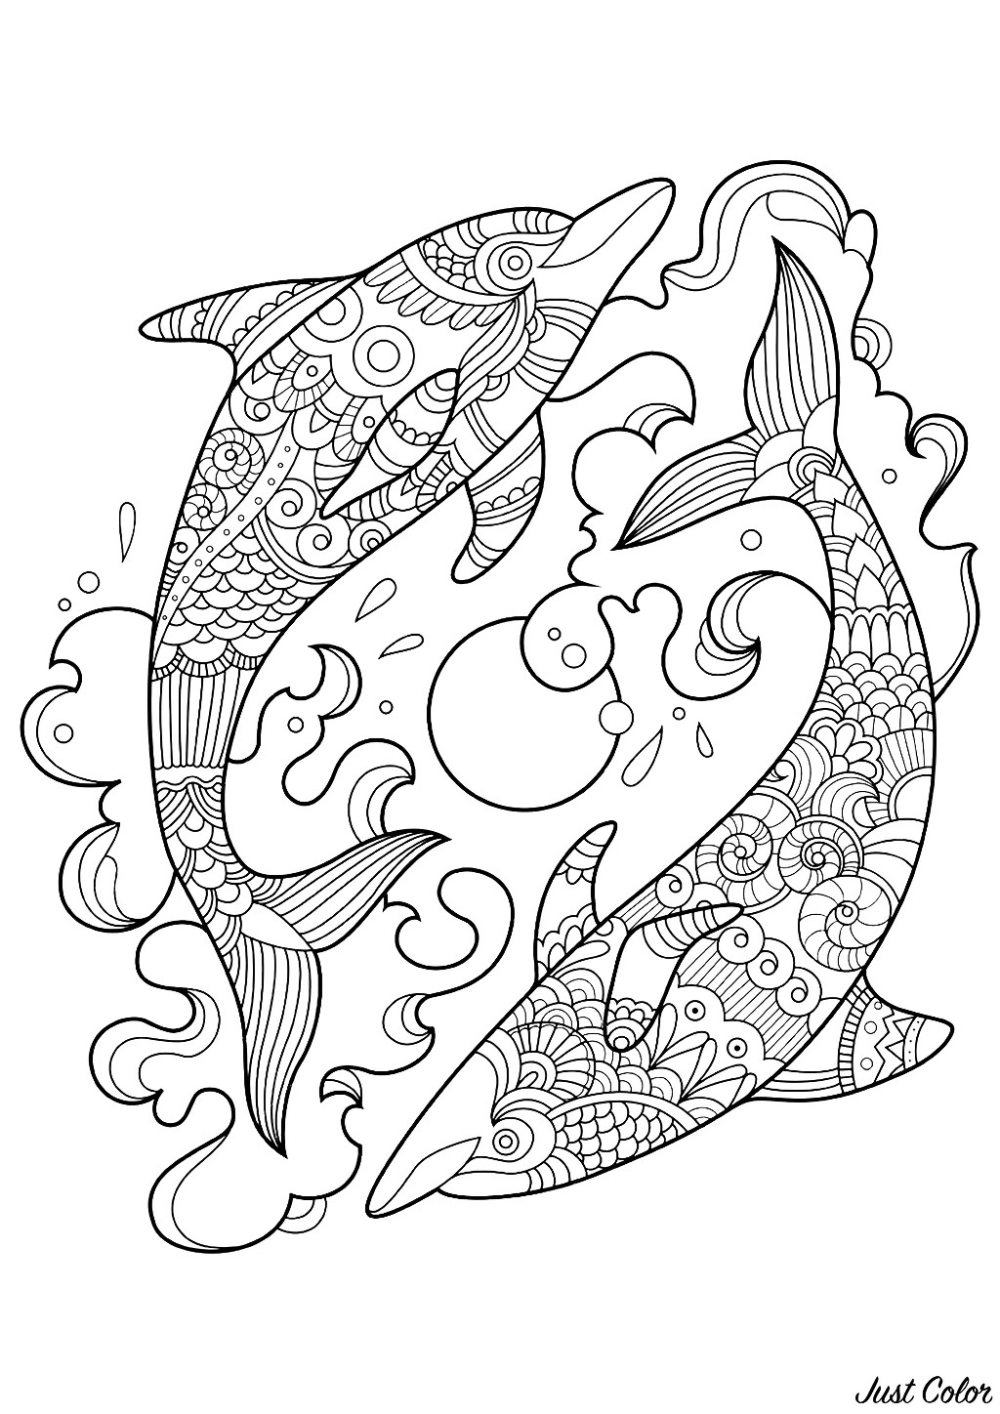 Two Dolphins In The Ocean Dolphins Coloring Pages For Adults Just Color Dolphin Coloring Pages Animal Coloring Pages Fish Coloring Page